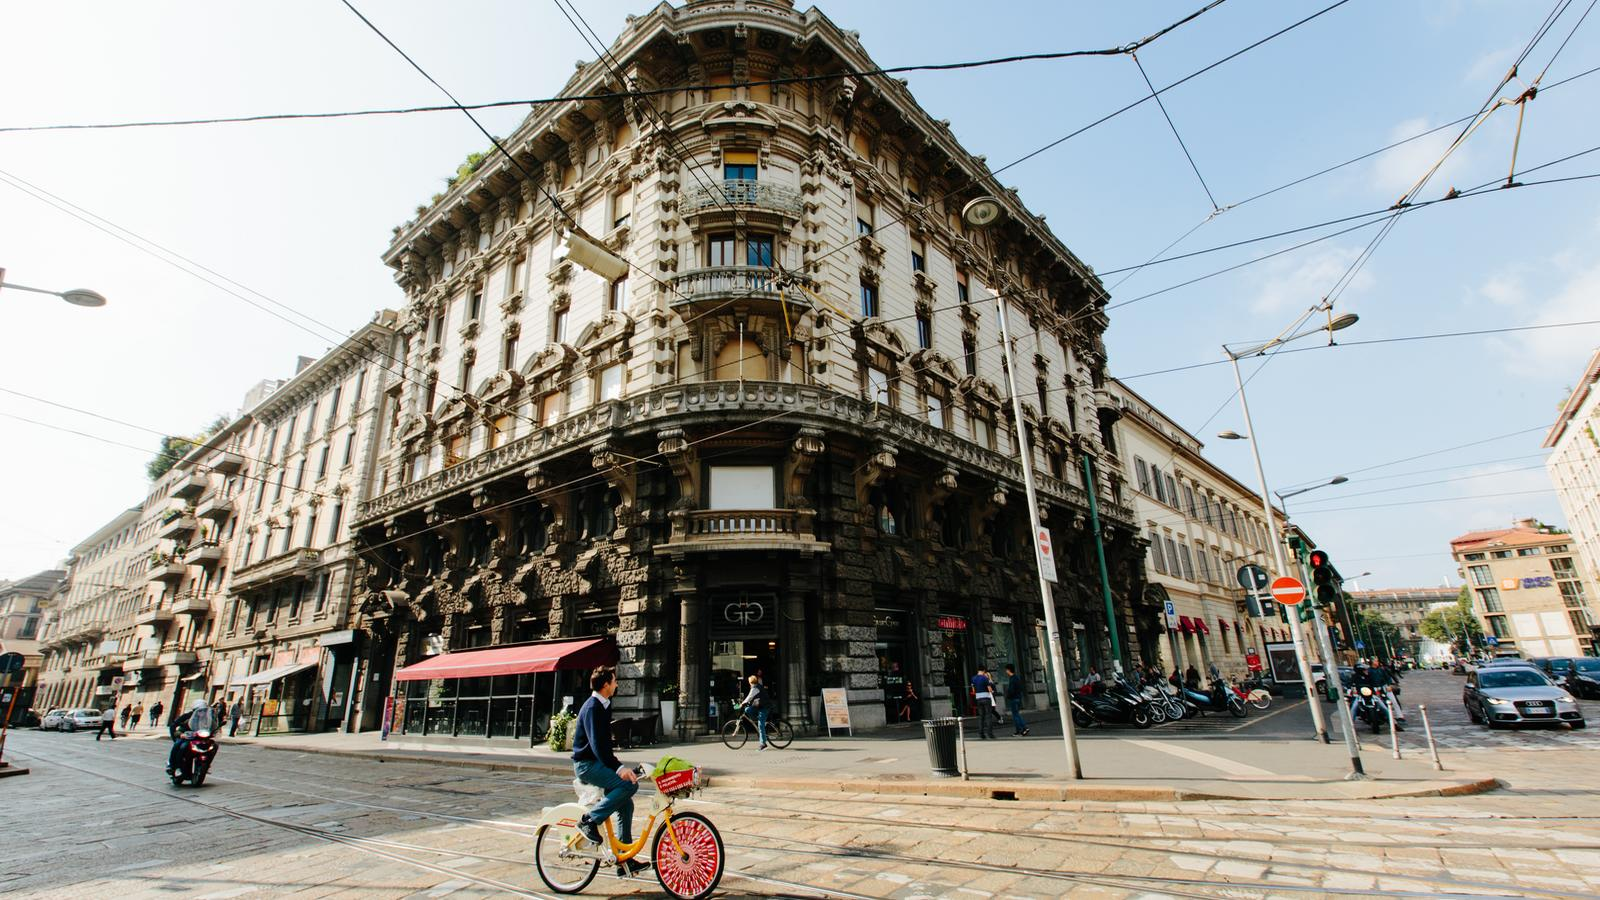 Cyclist in the streets of Milan